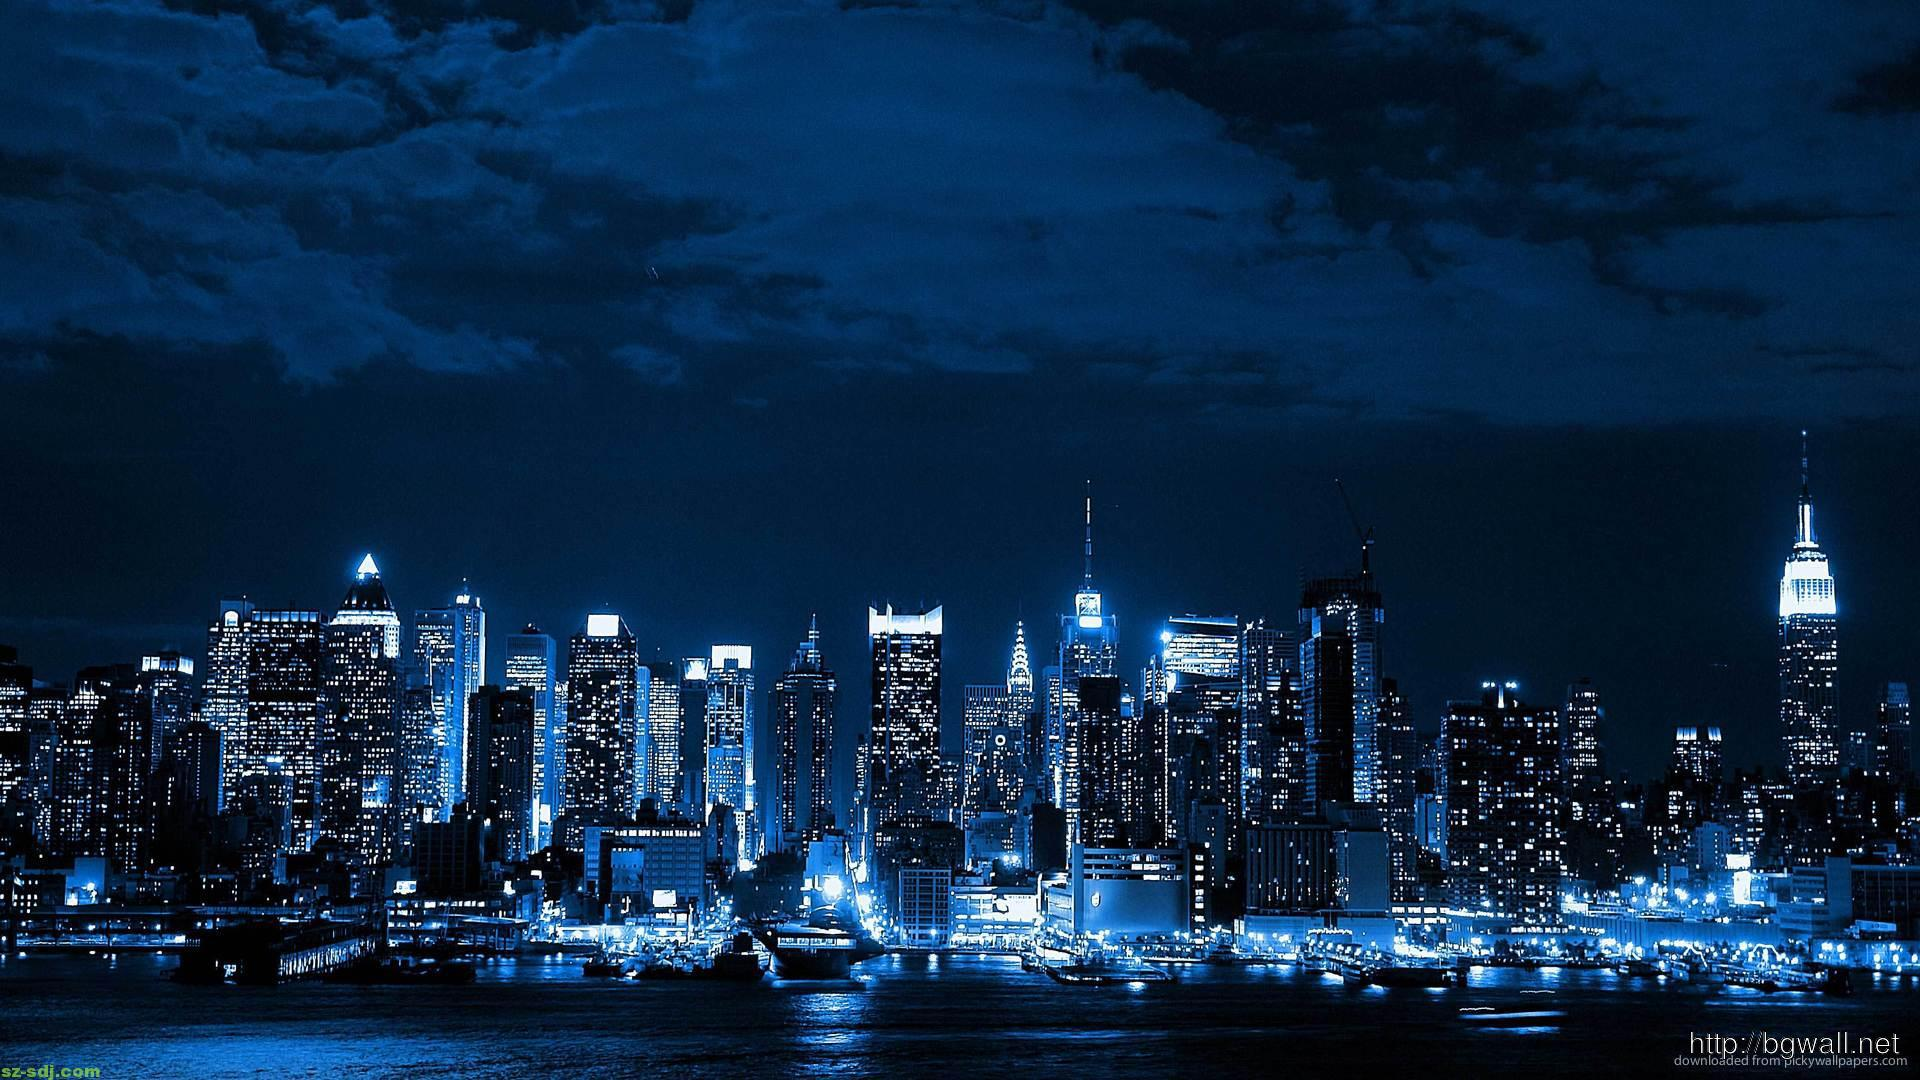 blue-night-city-picture-JPEG-Grafik-1920-%C3%97-1080-Pixel-Skaliert-wallpaper-wp3803350